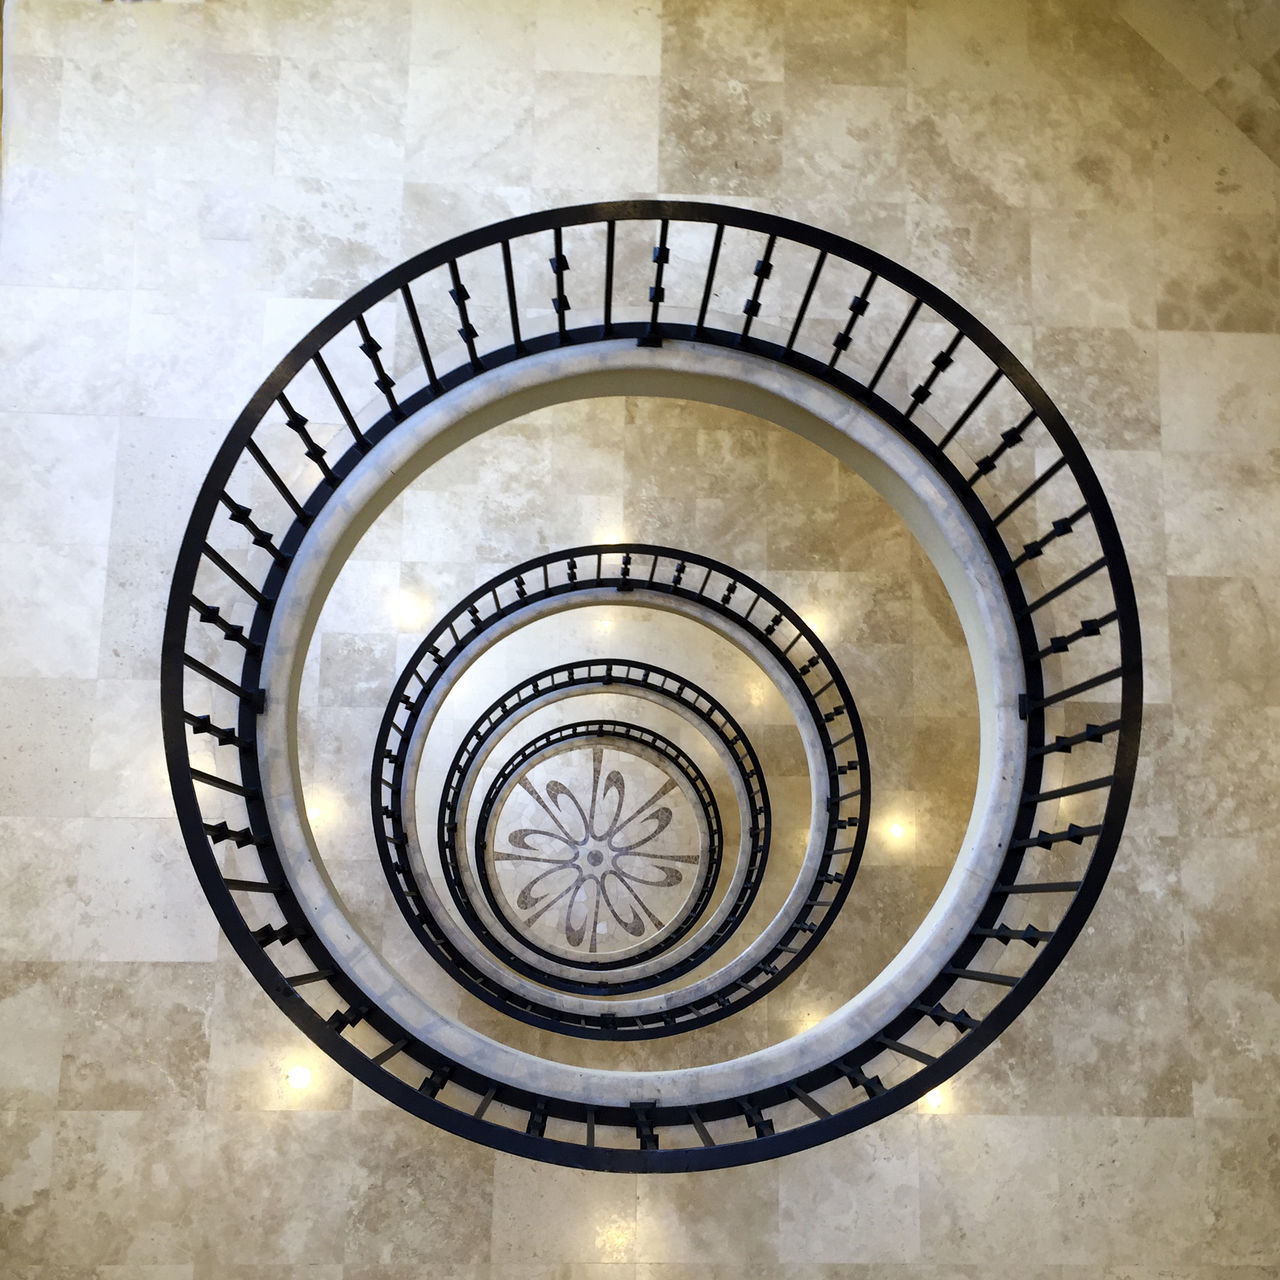 Artworks Black And Cream Colo Black Bannister Black Spiral Circle CIRCLE Of LIFE Circles In Circles Close-up Design Eyeem Artwork Eyeem Spiral Geometric Shape Marble Tiles No People No People, Spirals